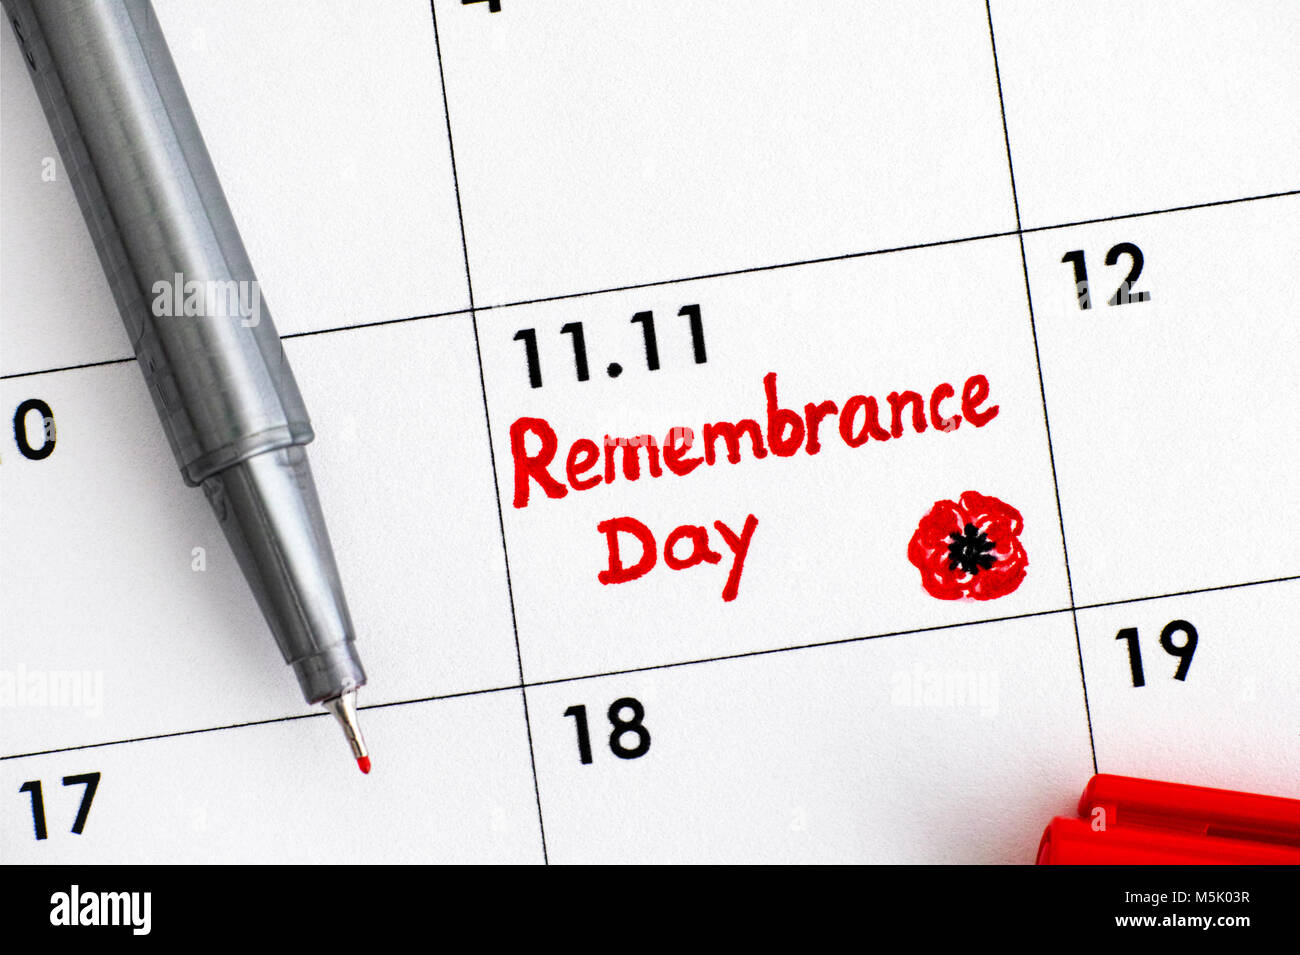 Reminder Remembrance Day in calendar with red pen. Close-up. Stock Photo